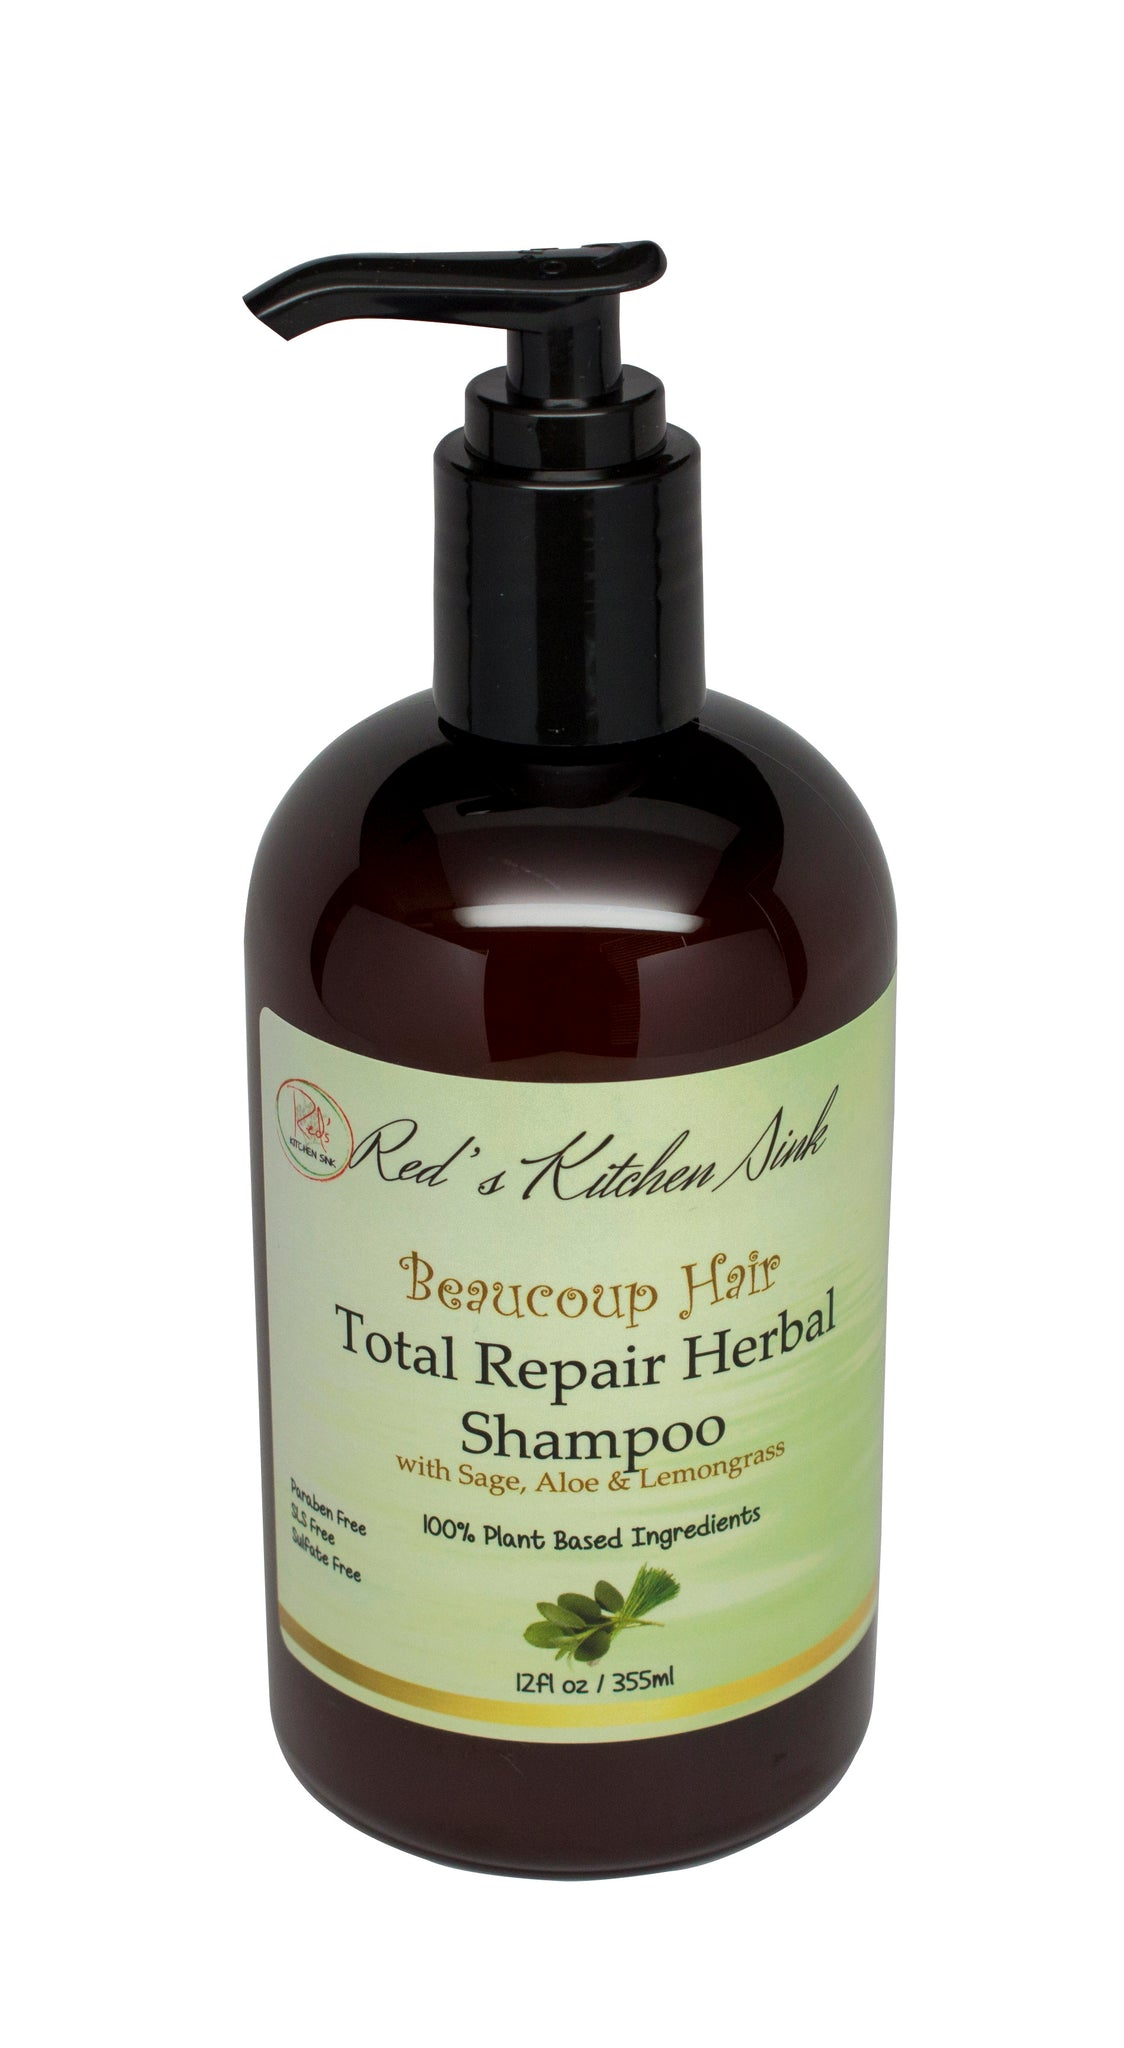 BEAUCOUP HAIR TOTAL REPAIR HERBAL SHAMPOO - Red's Kitchen Sink